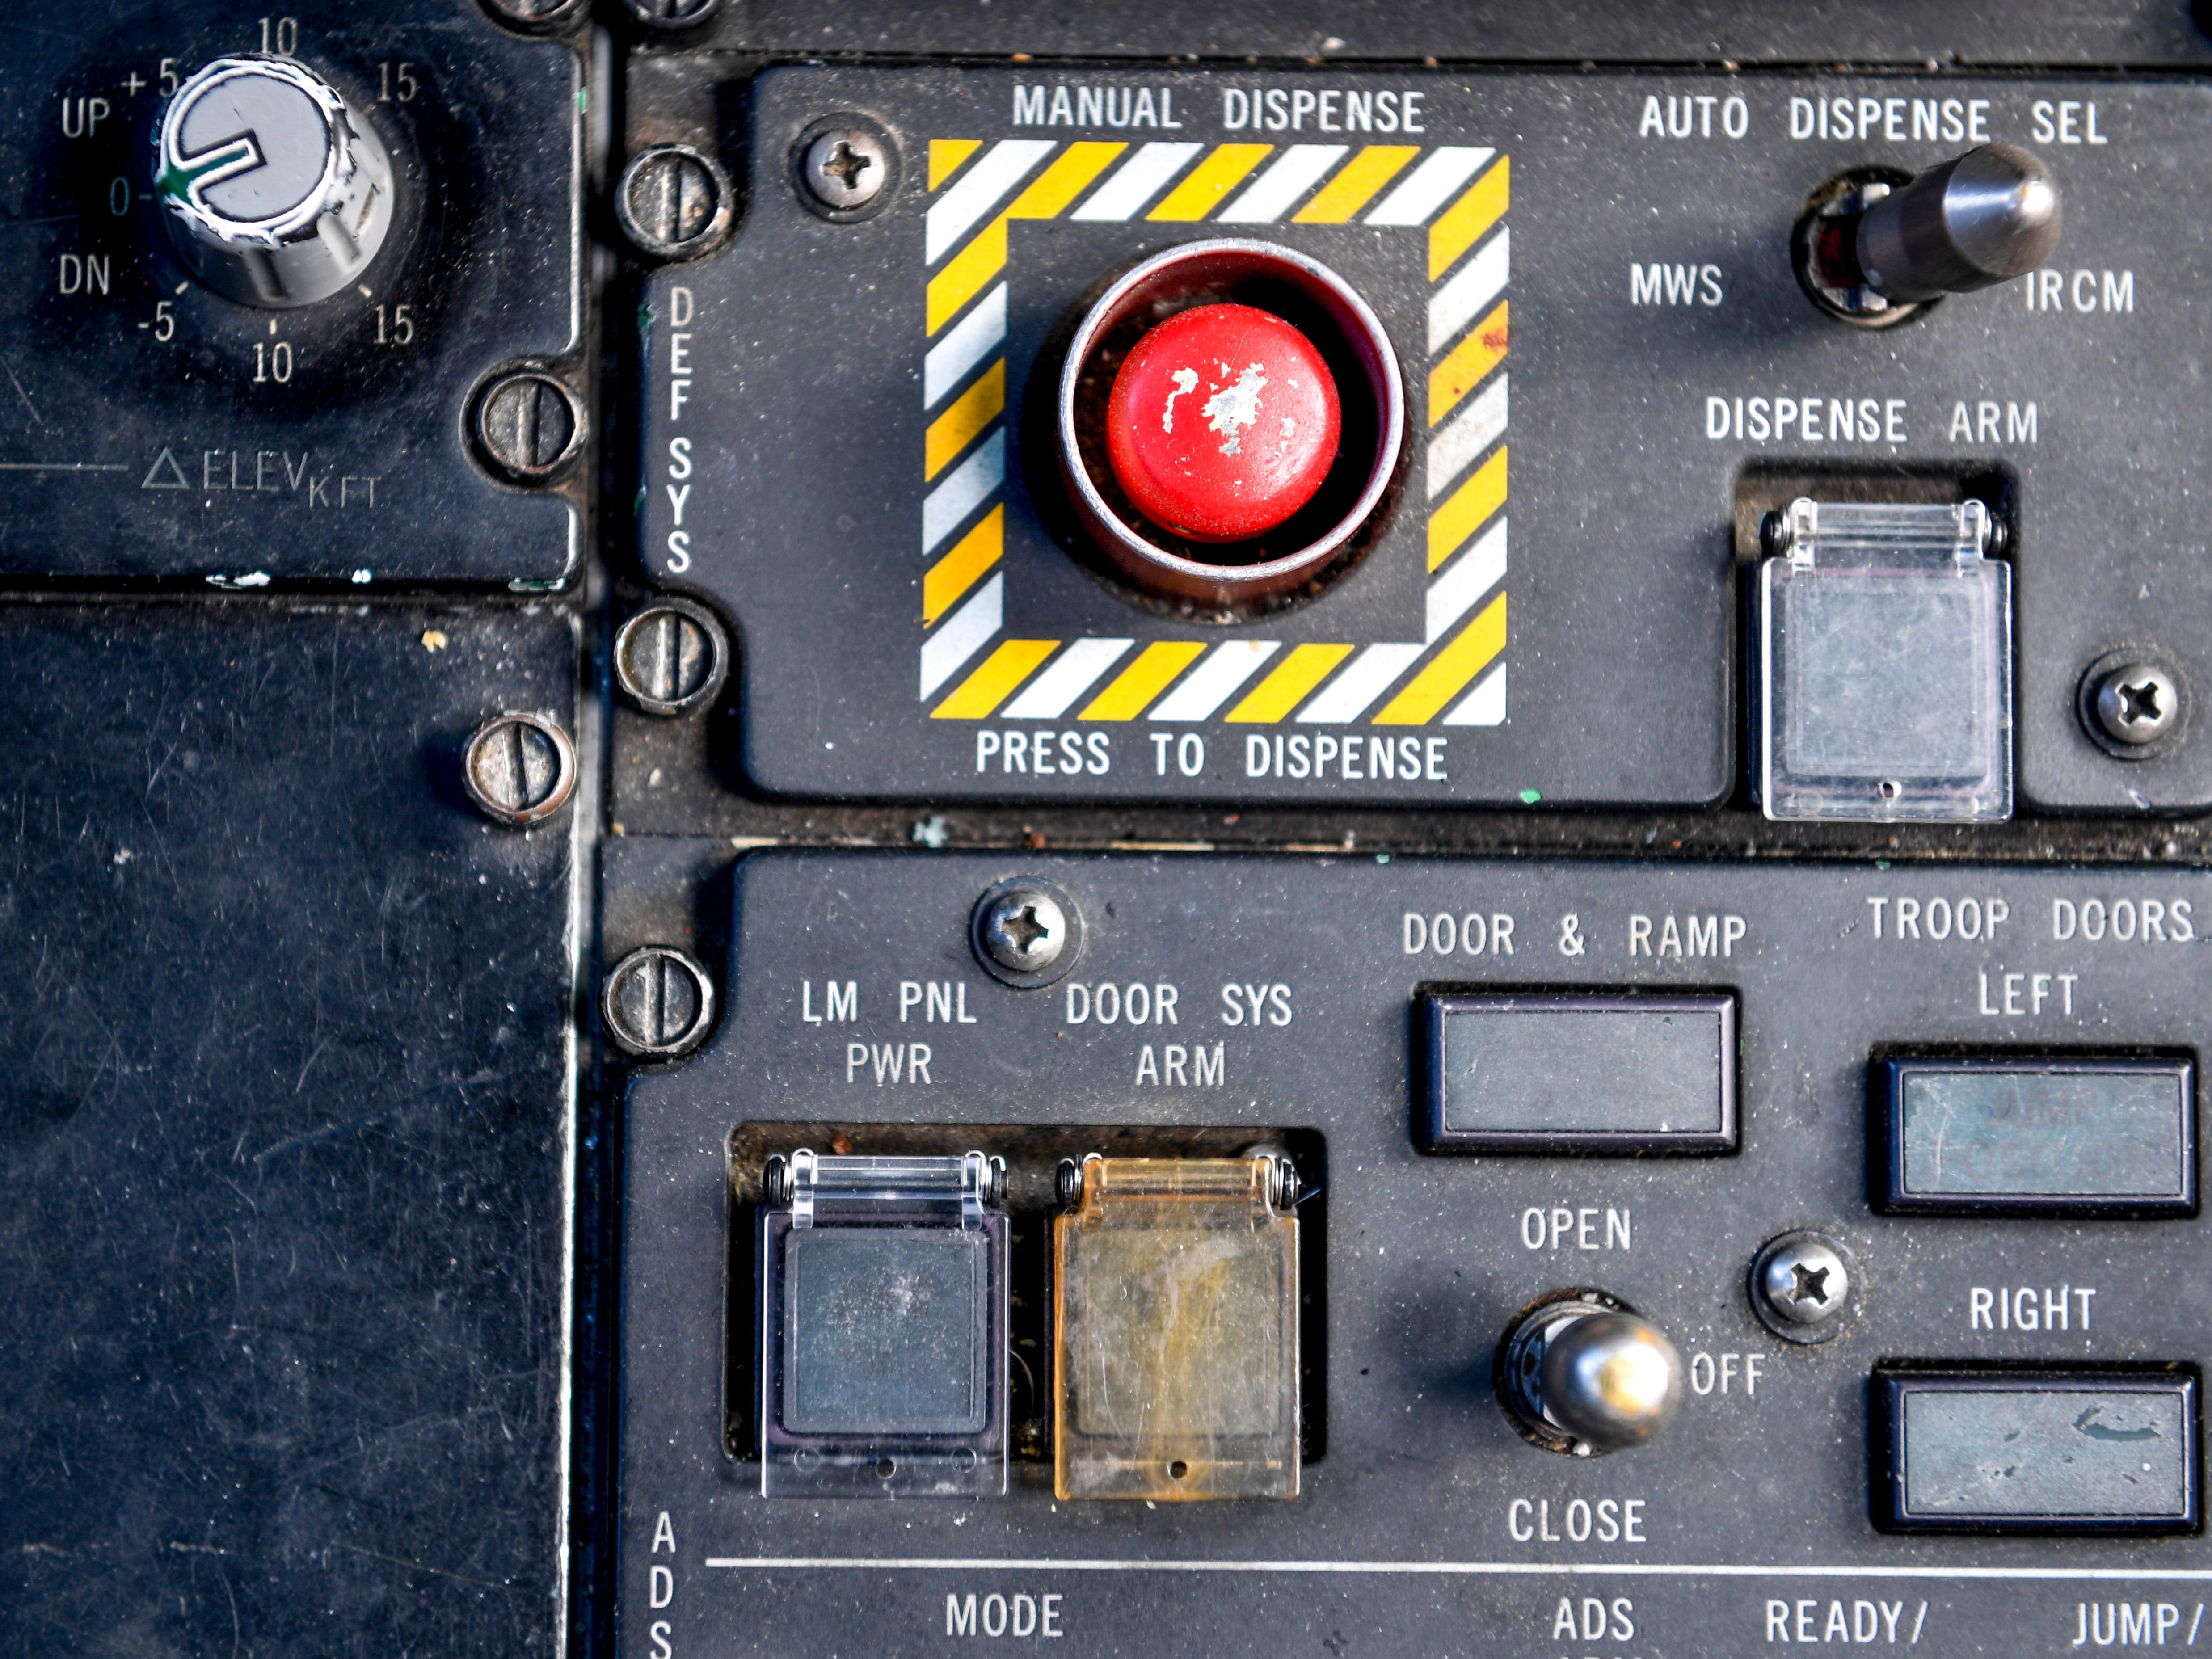 A big red button that initiates defense systems can be seen in the cockpit of a C-17 during the annual Bosslift event put on by Employer Support of the Guard and Reserve (ESGR) and the Tennessee National Guard at 164th Airlift Wing in Memphis, Tenn., on Thursday, Nov. 8, 2018.